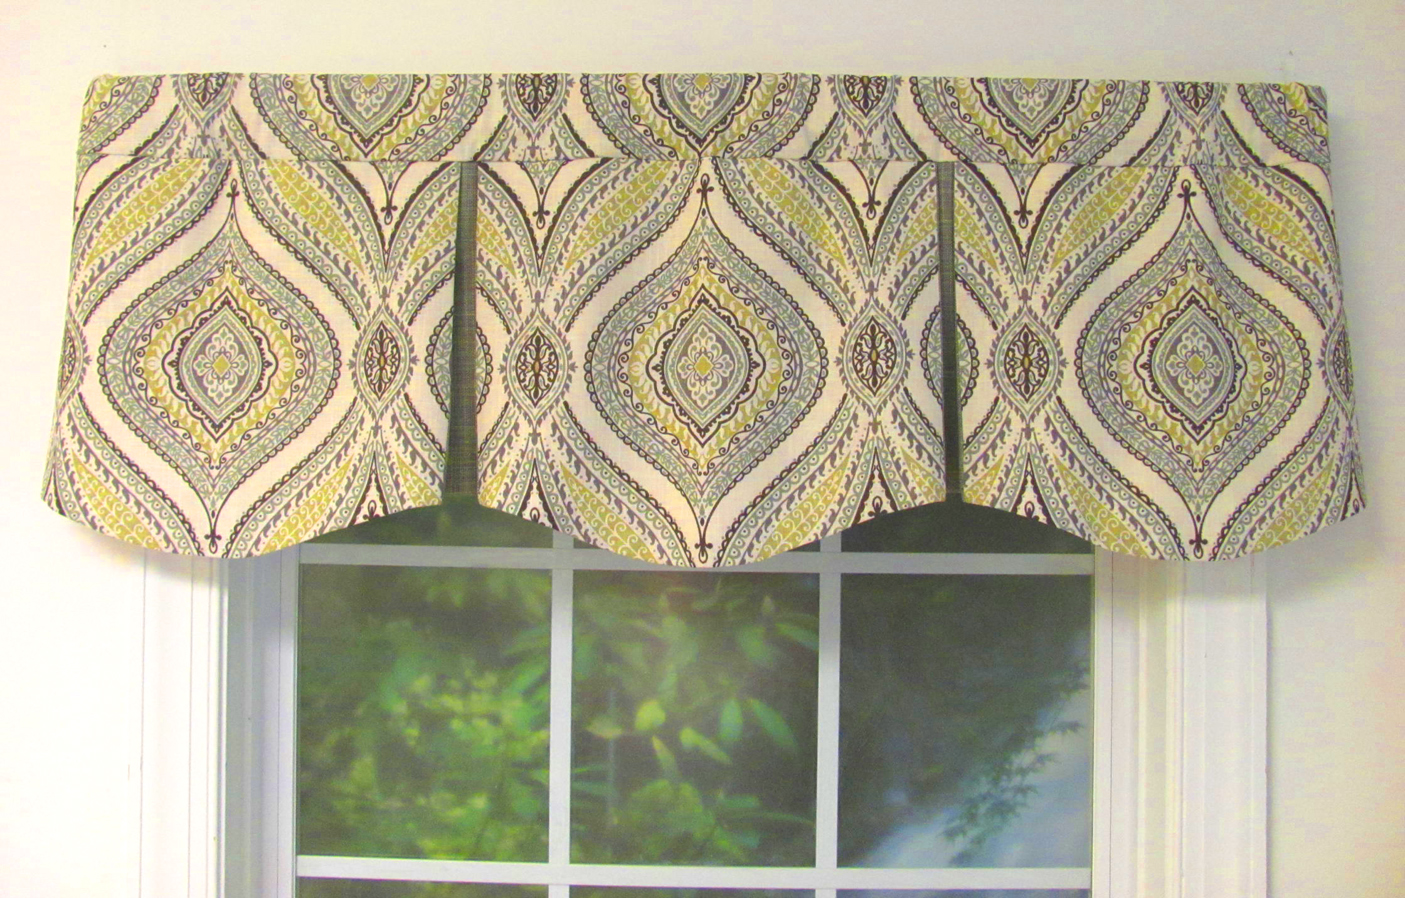 valance of jcpenney ikea kitchen penney window spectacular waverly jc size country living swag valances penneys decor curtains full awesome